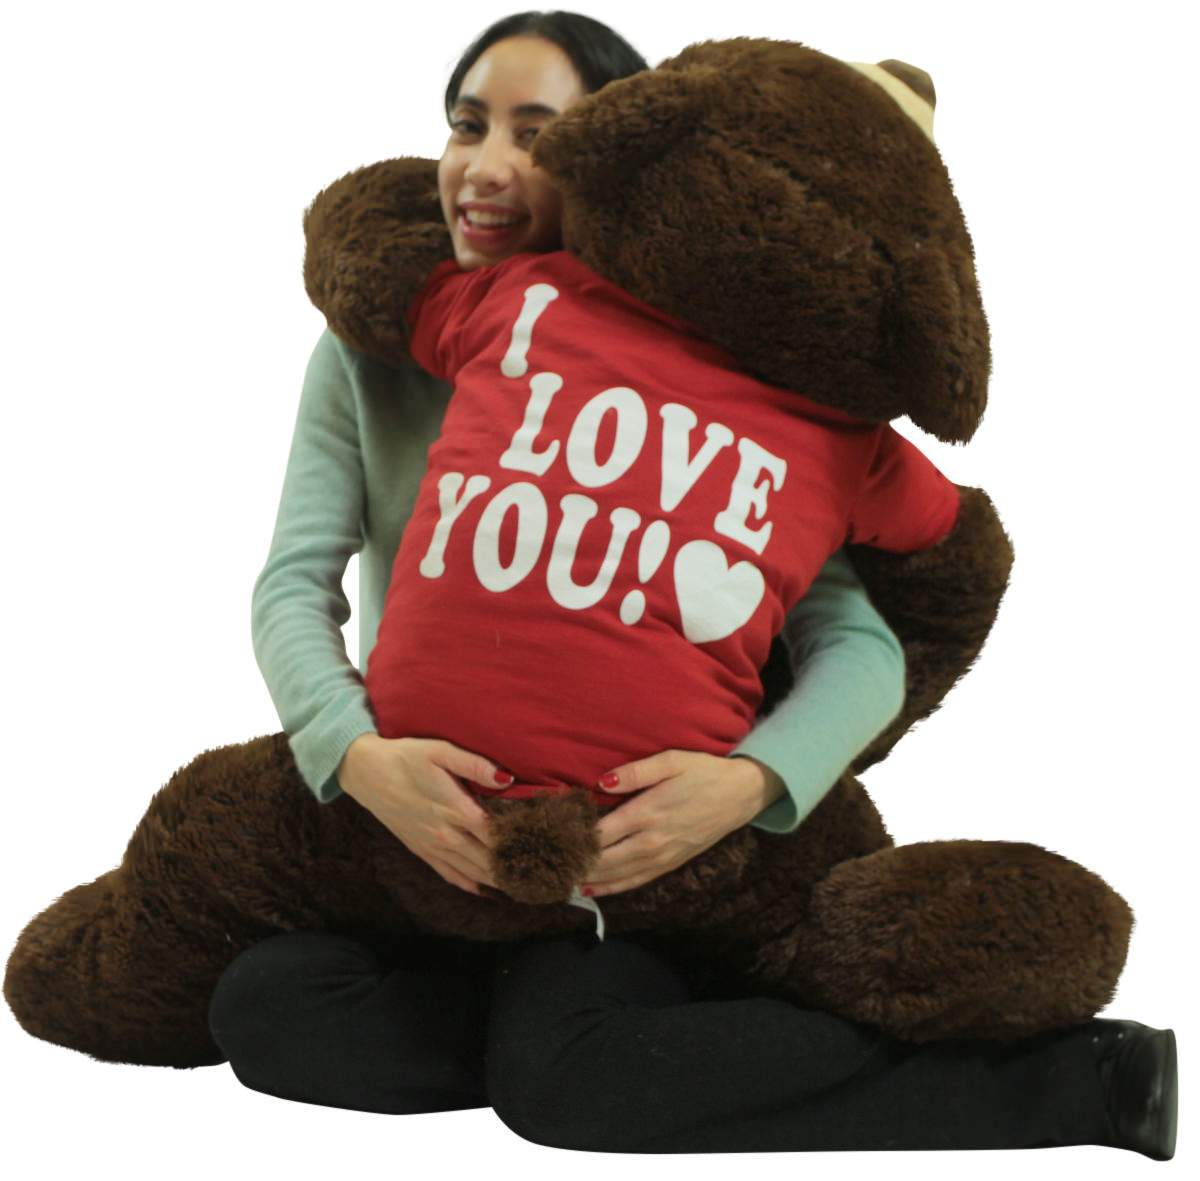 I Love You Giant Teddy Bear 36 Inch Soft Chocolate Brown Color 3 Foot